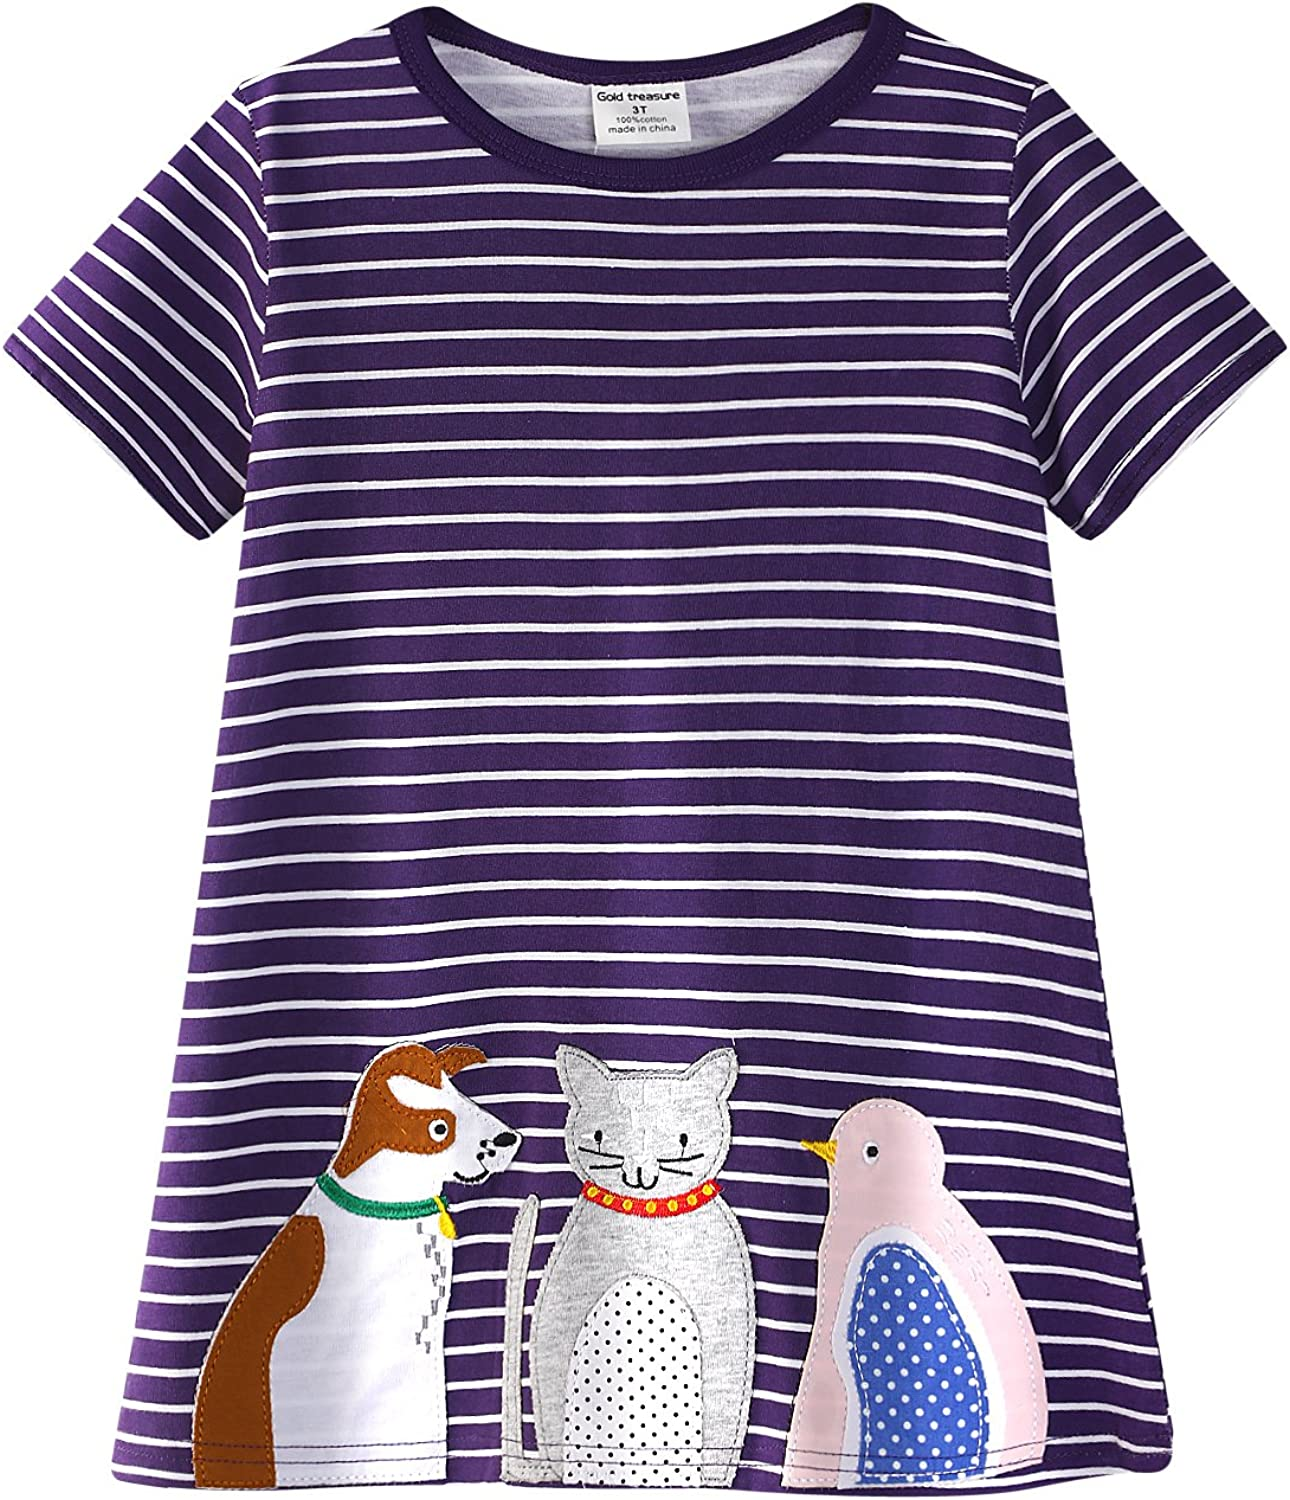 PRETCFTB Girls Cotton Short Sleeve Casual Dress with Animals and Stripes